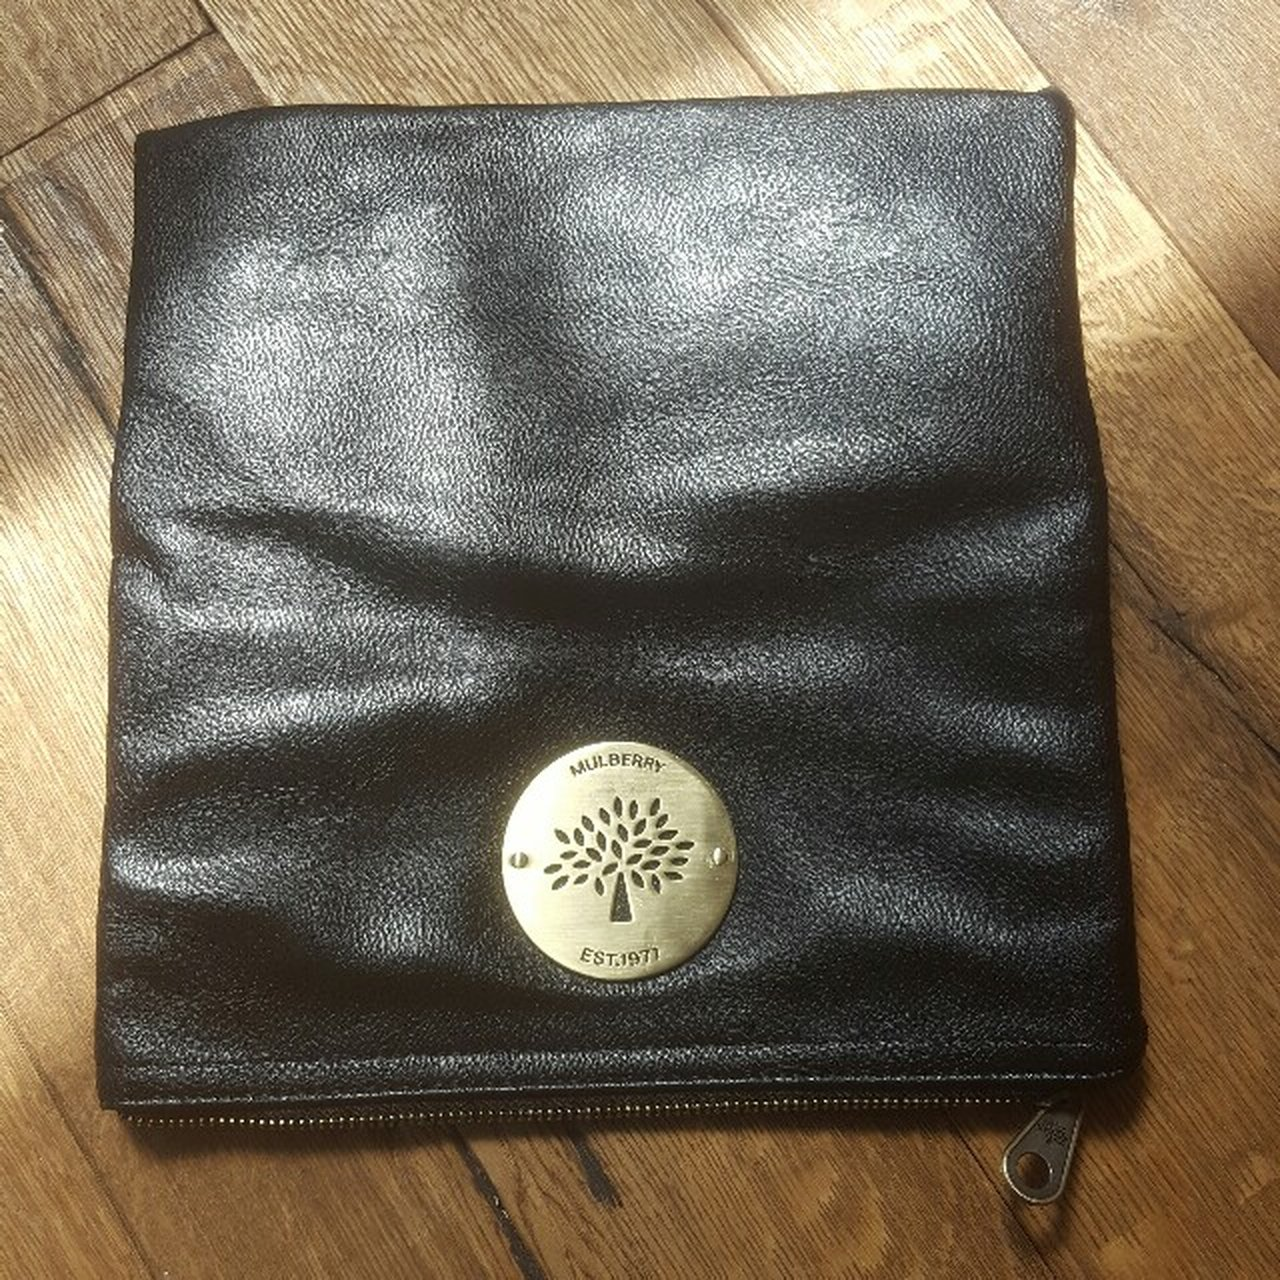 8030577740ca Mulberry fold over clutch bag in genuine soft black leather - Depop